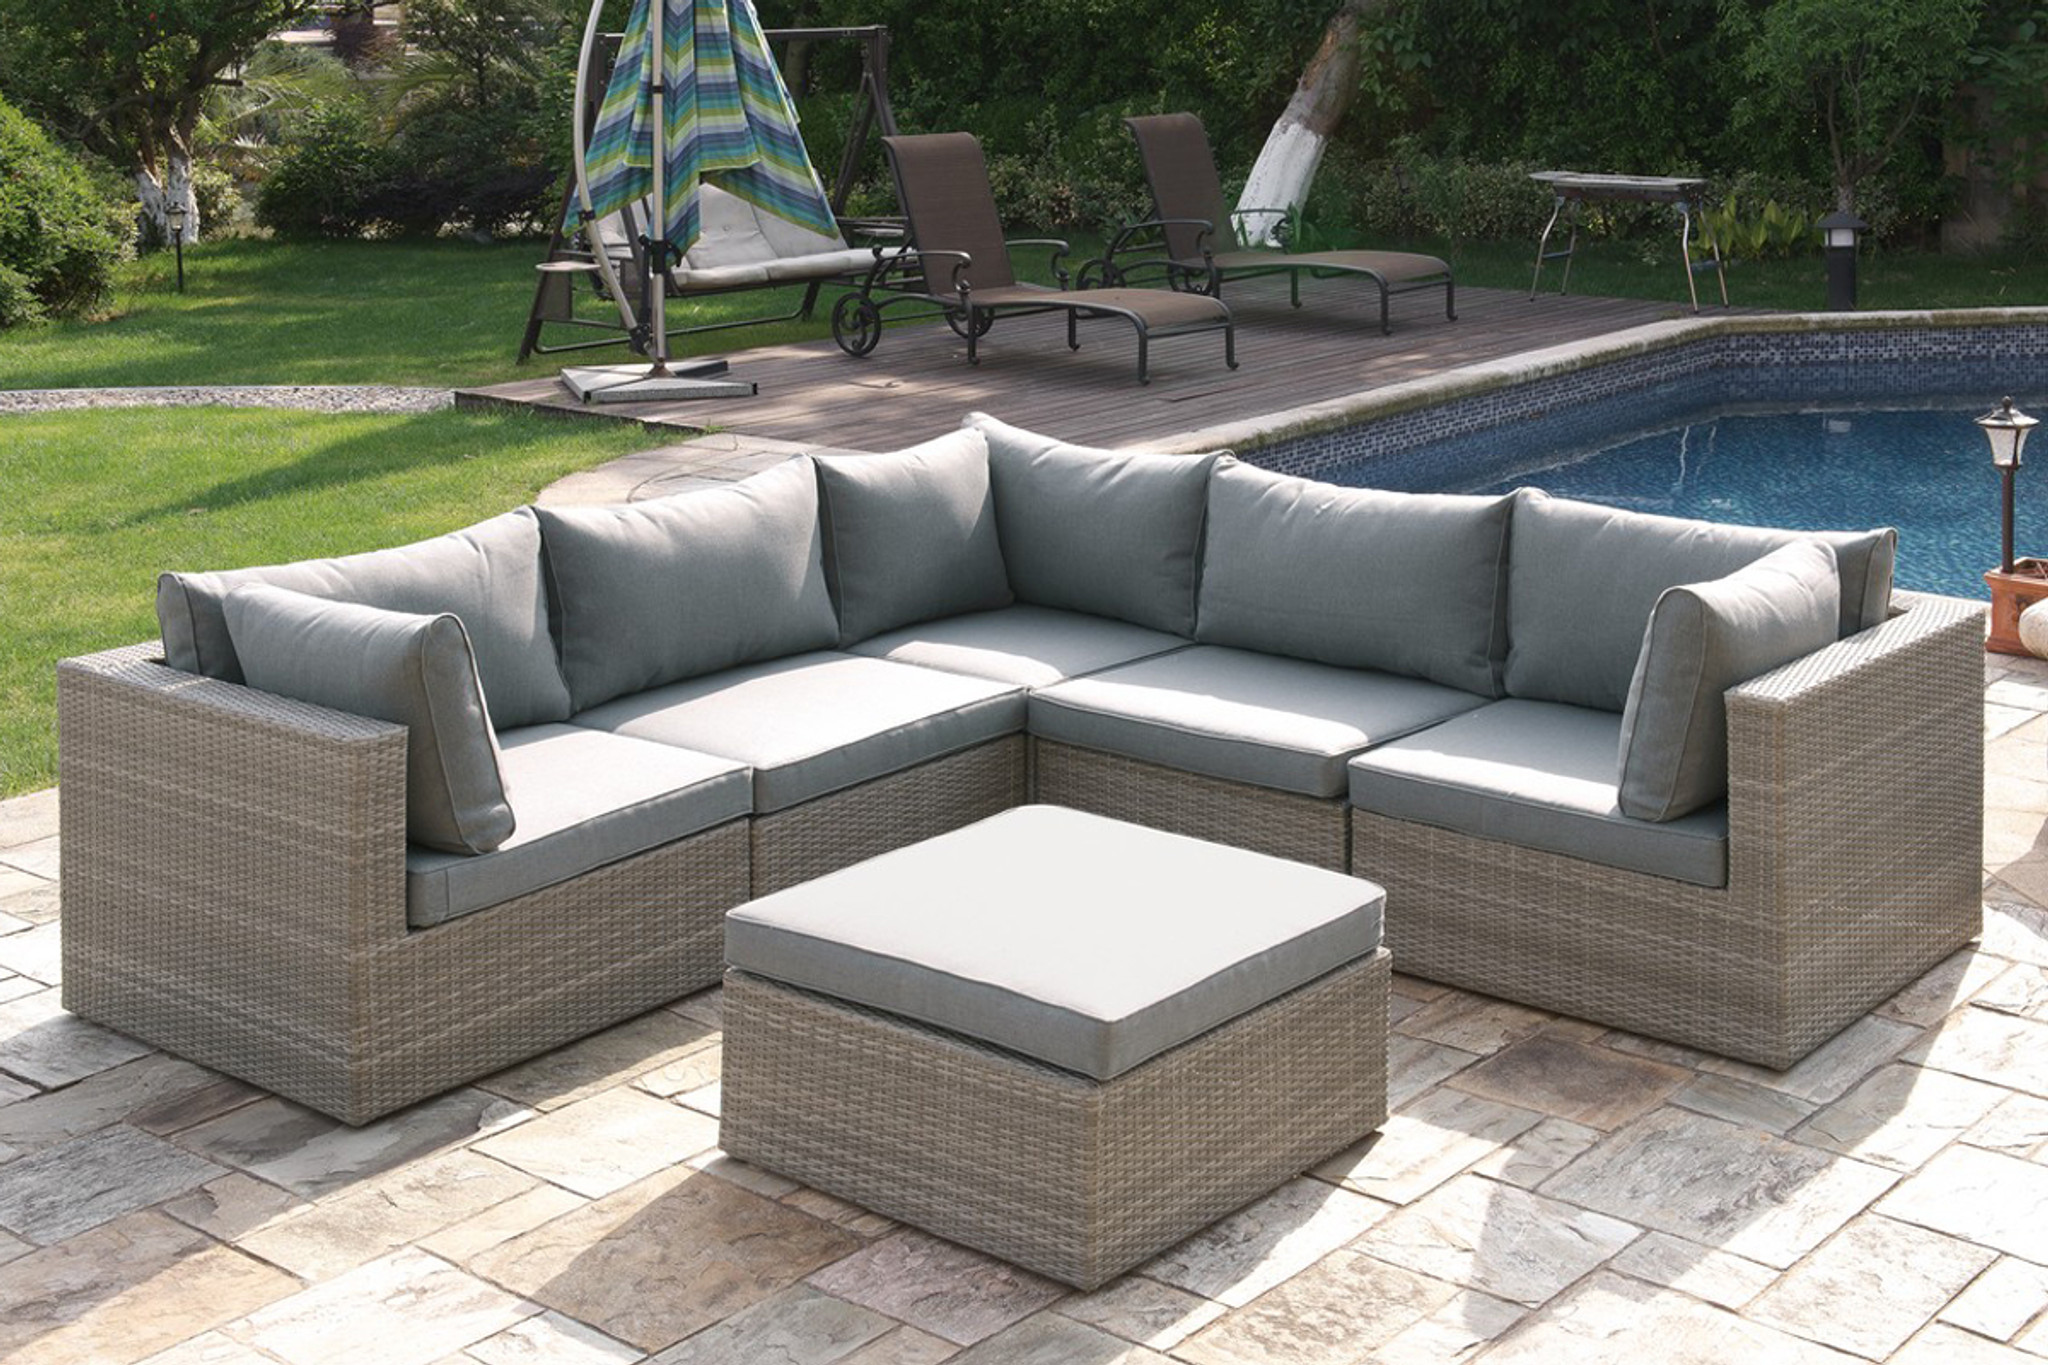 Awesome 6Pc Outdoor Patio Sofa Set In Tan Resin Wicker Finish With Ottoman Squirreltailoven Fun Painted Chair Ideas Images Squirreltailovenorg